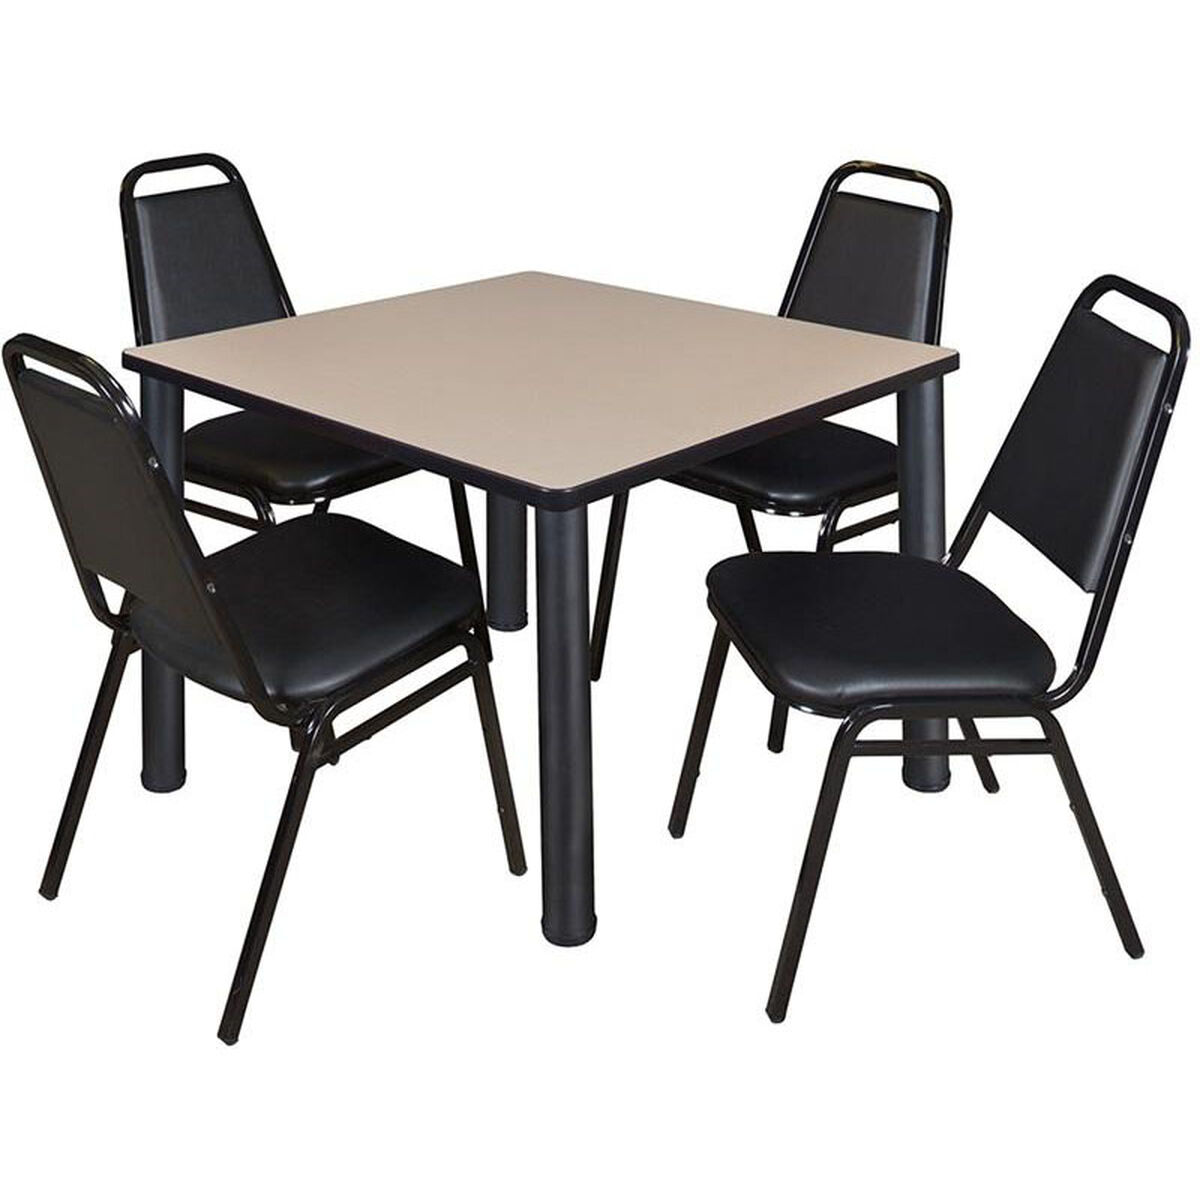 Square table and stack chair set tb bebpbk bk